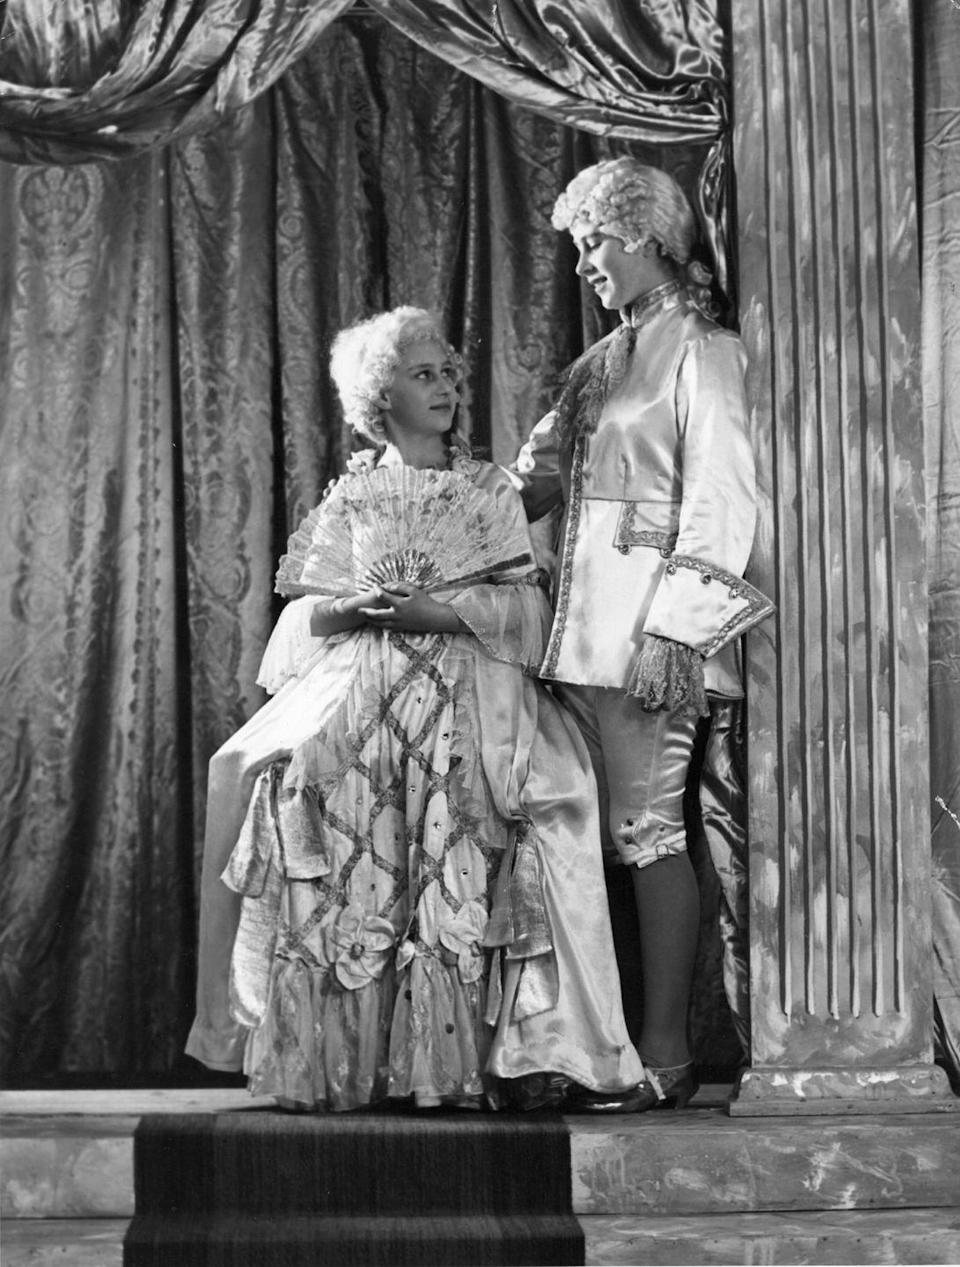 <p>Princess Margaret played Cinderella and Princess Elizabeth was Prince Charming for a pantomime at Windsor Castle. Casual, right?</p>